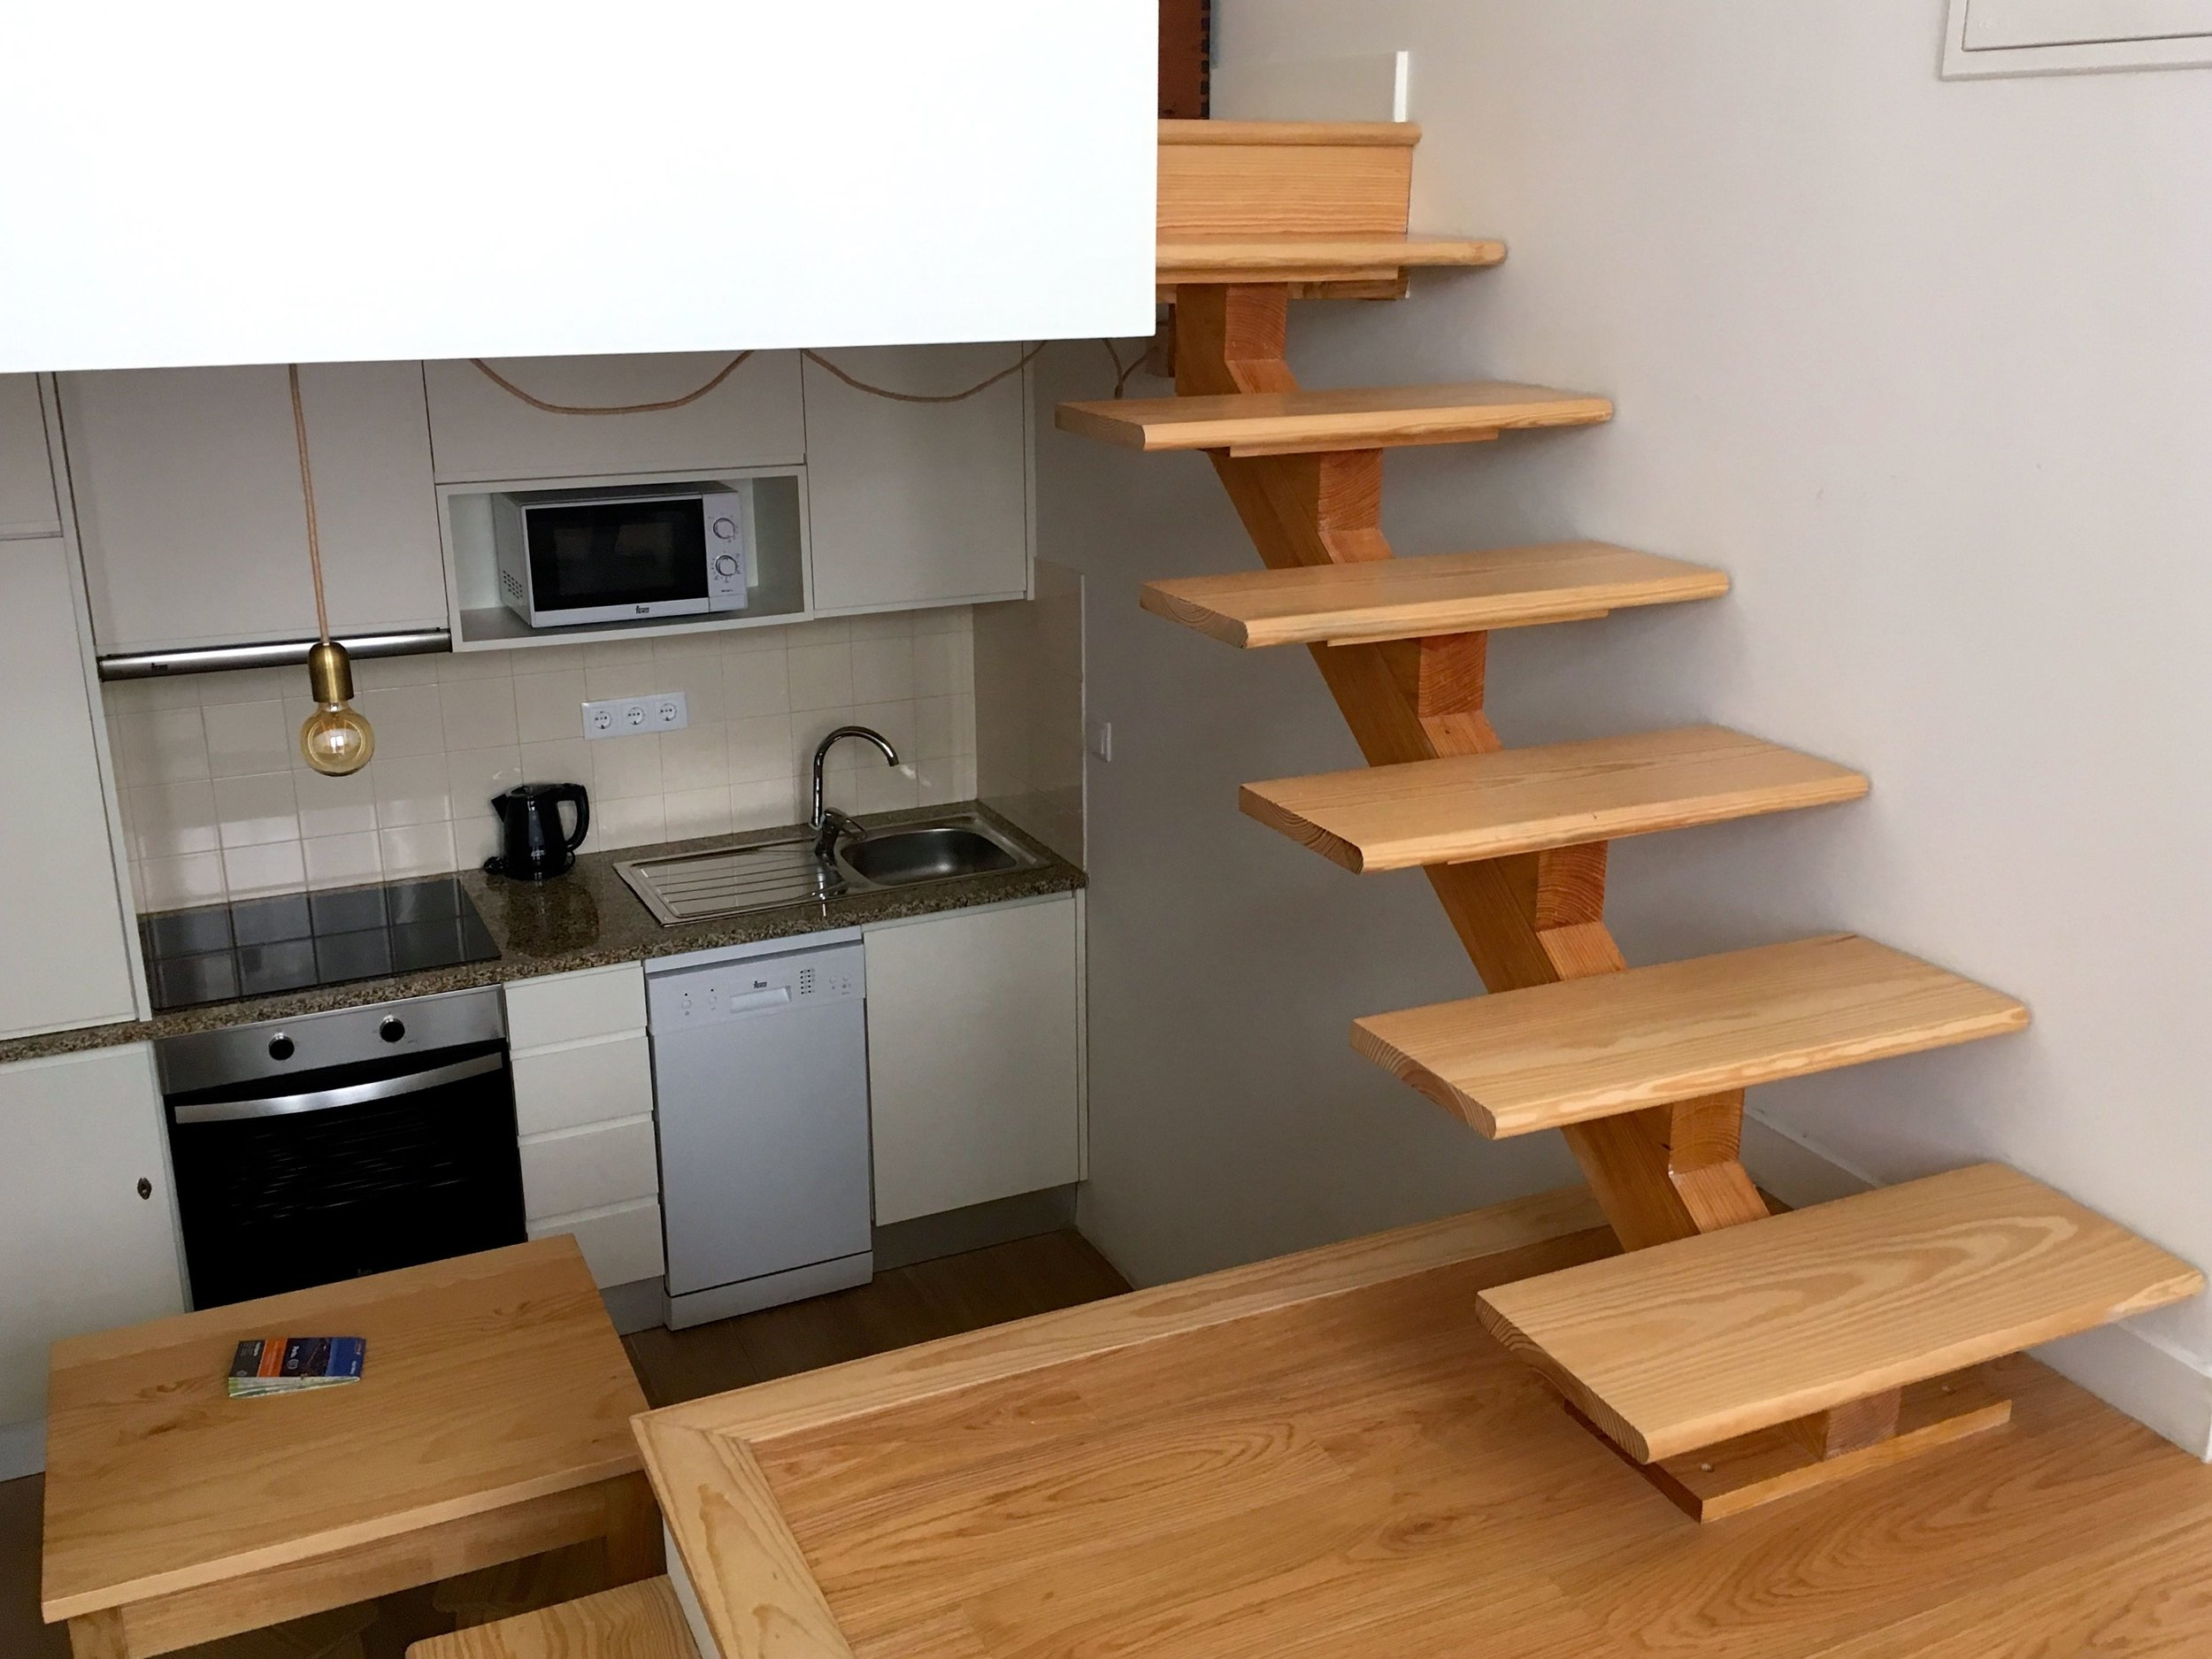 Upstairs to the bedroom and downstairs to the kitchen